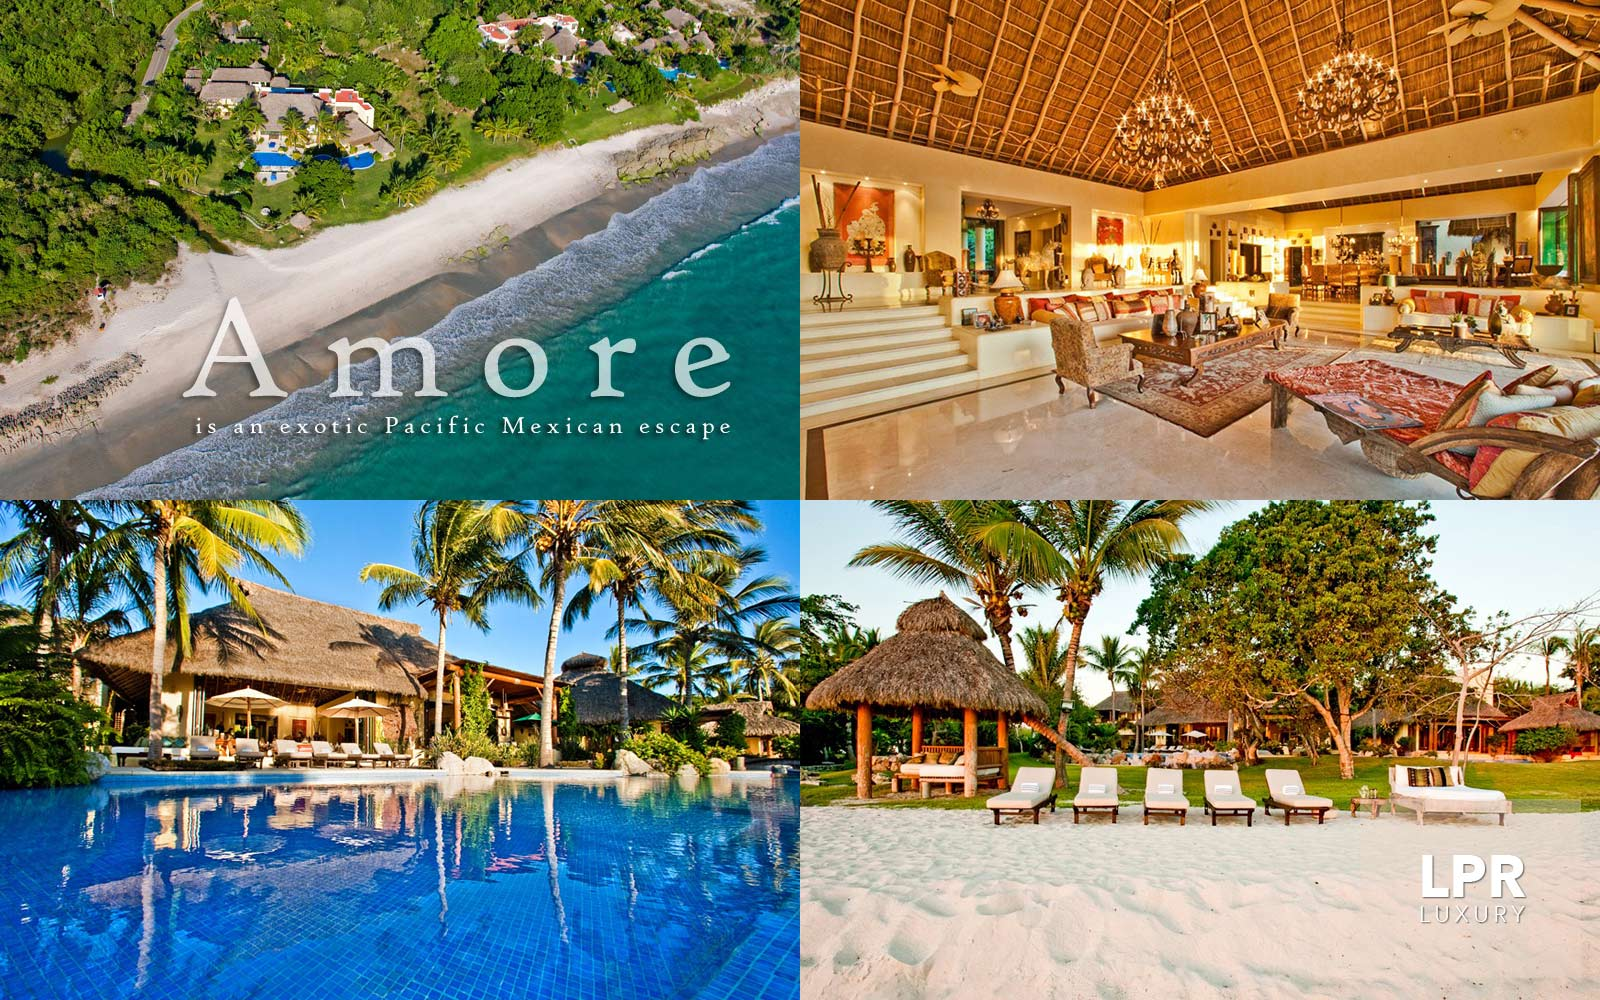 Villa Ranchos 1 - Casa Amore sits on soft white sand overlooking sunsets, the Marietas Islands and the world renown Punta Mita Resort, Riviera Nayarit, home to the Four Seasons & The St. Regis resorts